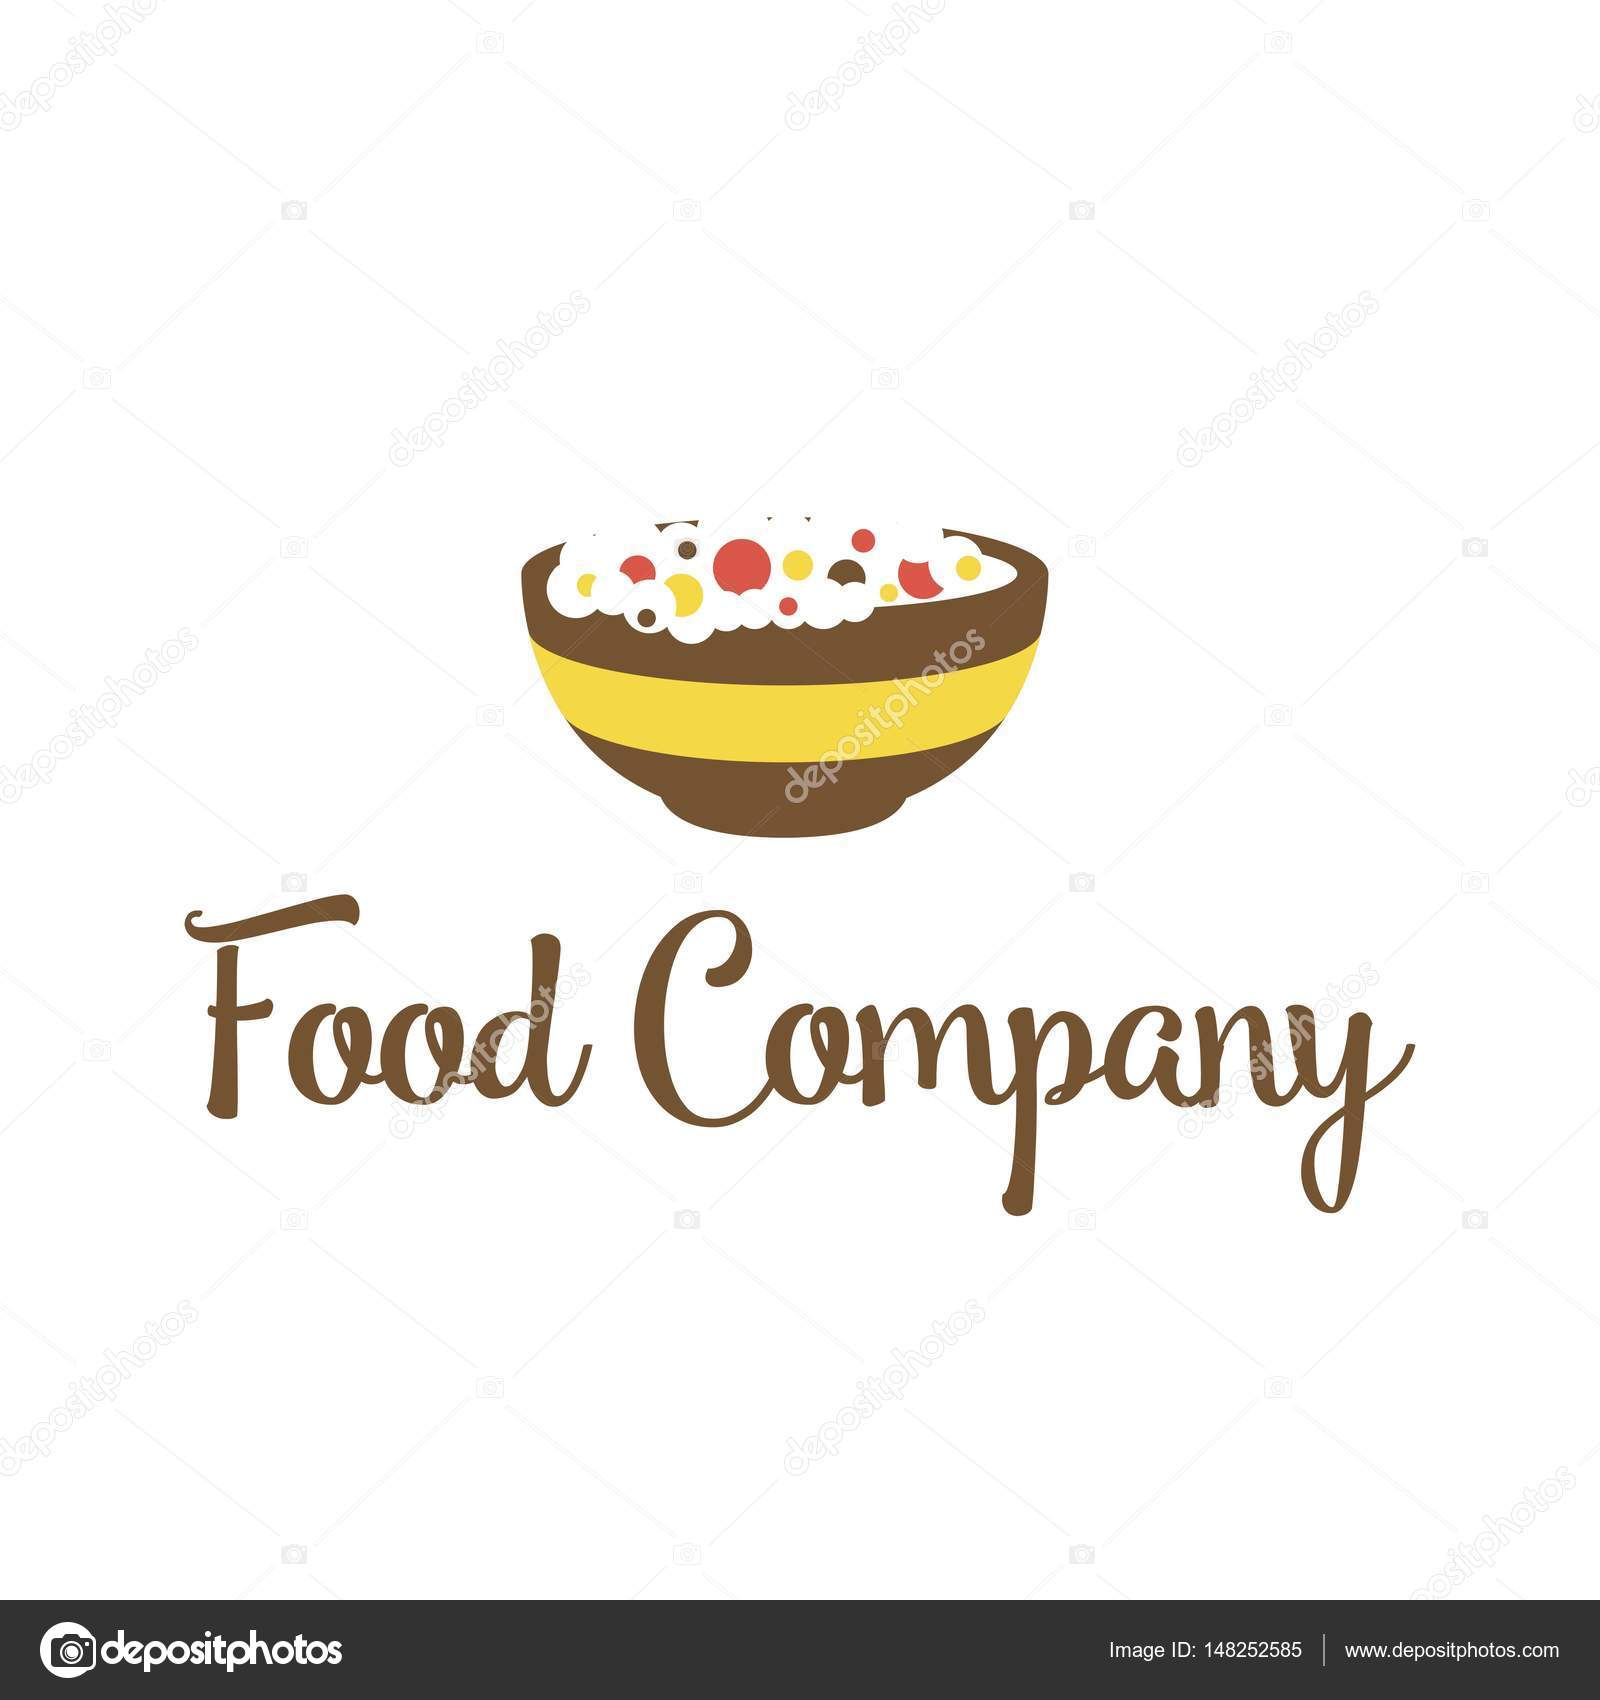 Food and restaurant logo design idea logo with negative space food and restaurant logo design idea logo with negative space cooking creative logo symbol template vector by plahotya buycottarizona Image collections